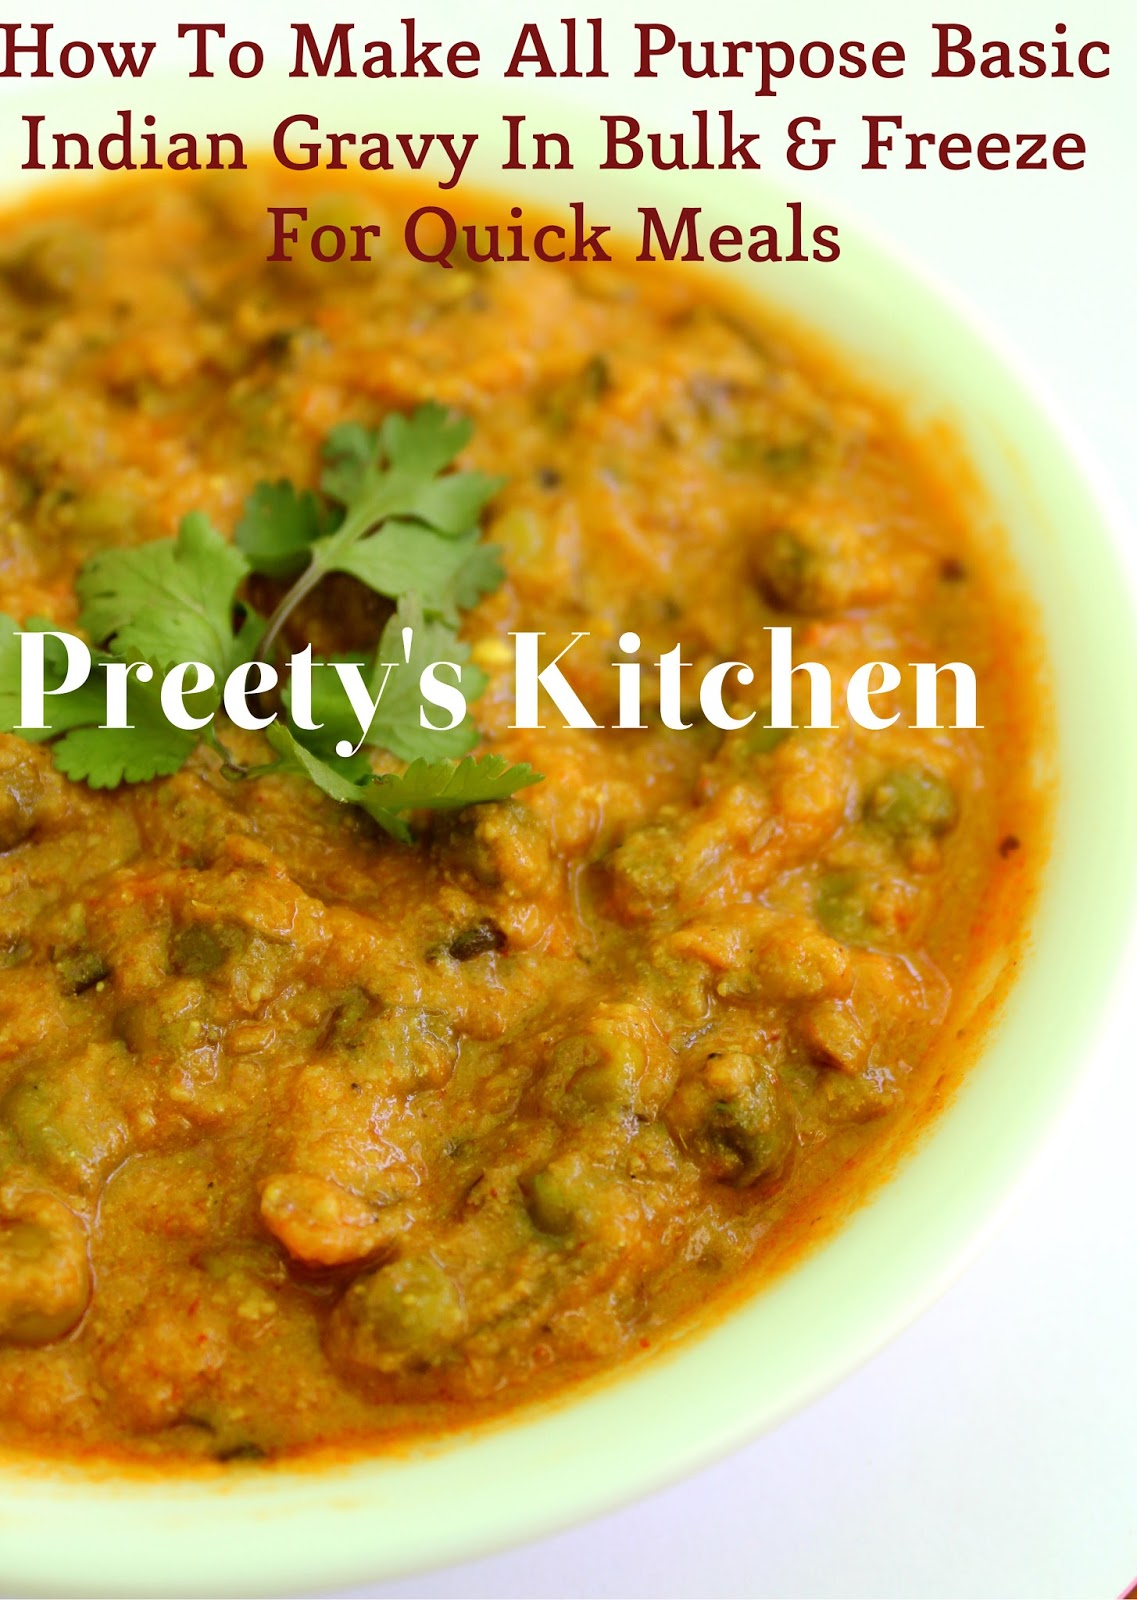 Preetys kitchen how to make all purpose basic indian gravy in bulk how to make all purpose basic indian gravy in bulk freeze for quick meals vegan recipe forumfinder Choice Image